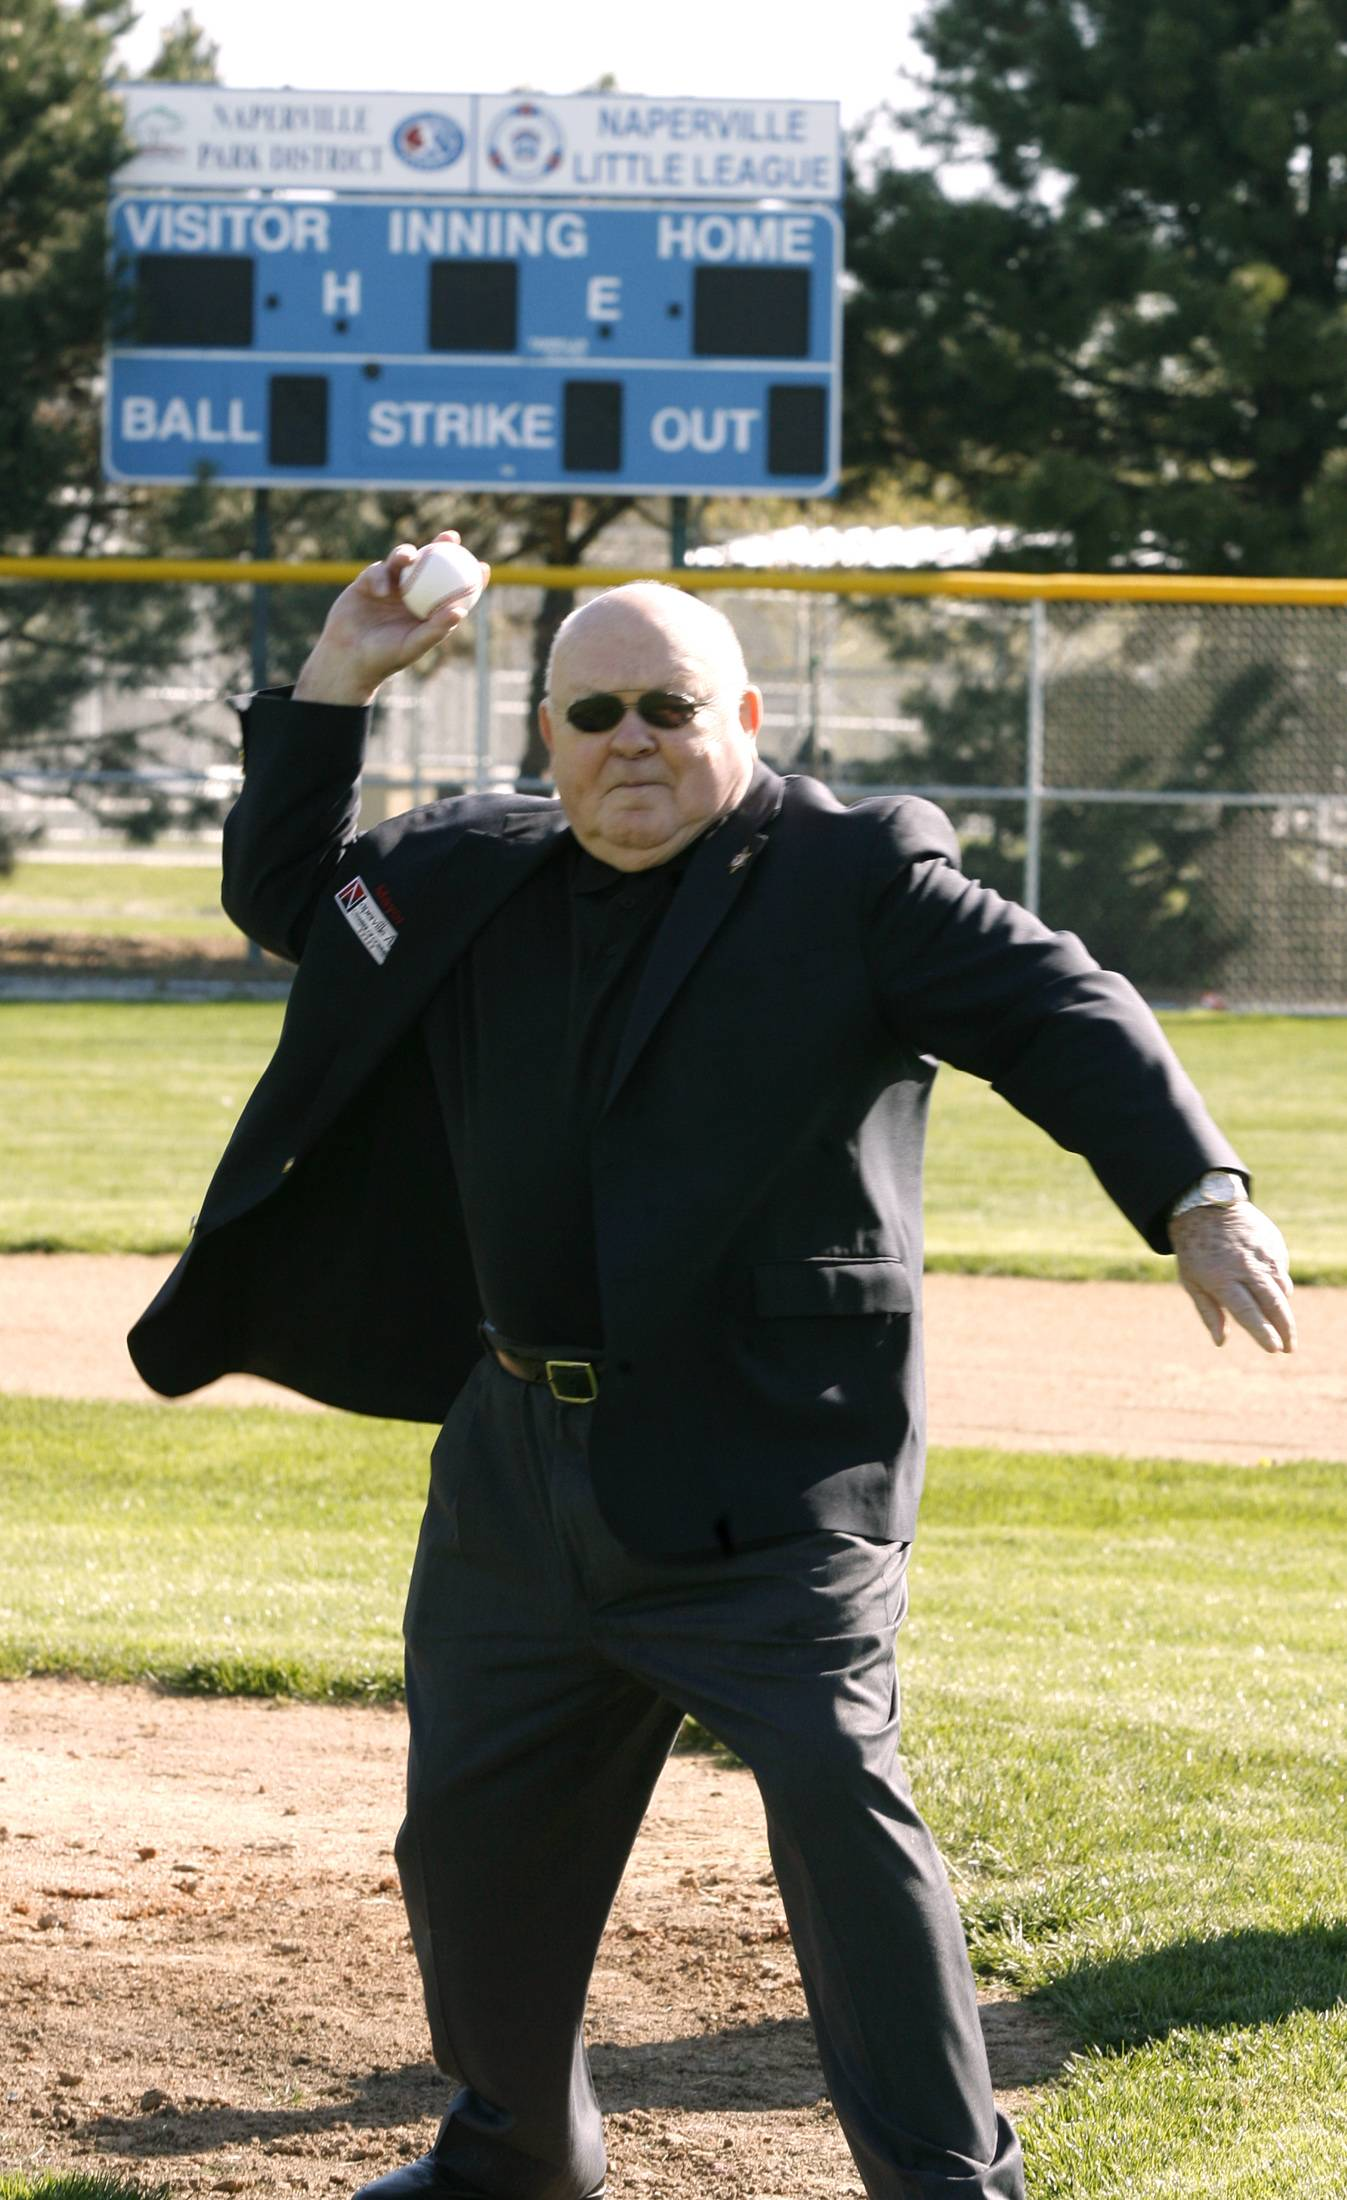 Pradel throws out the first pitch as Naperville Park District celebrates the opening of another Naperville Little League season.